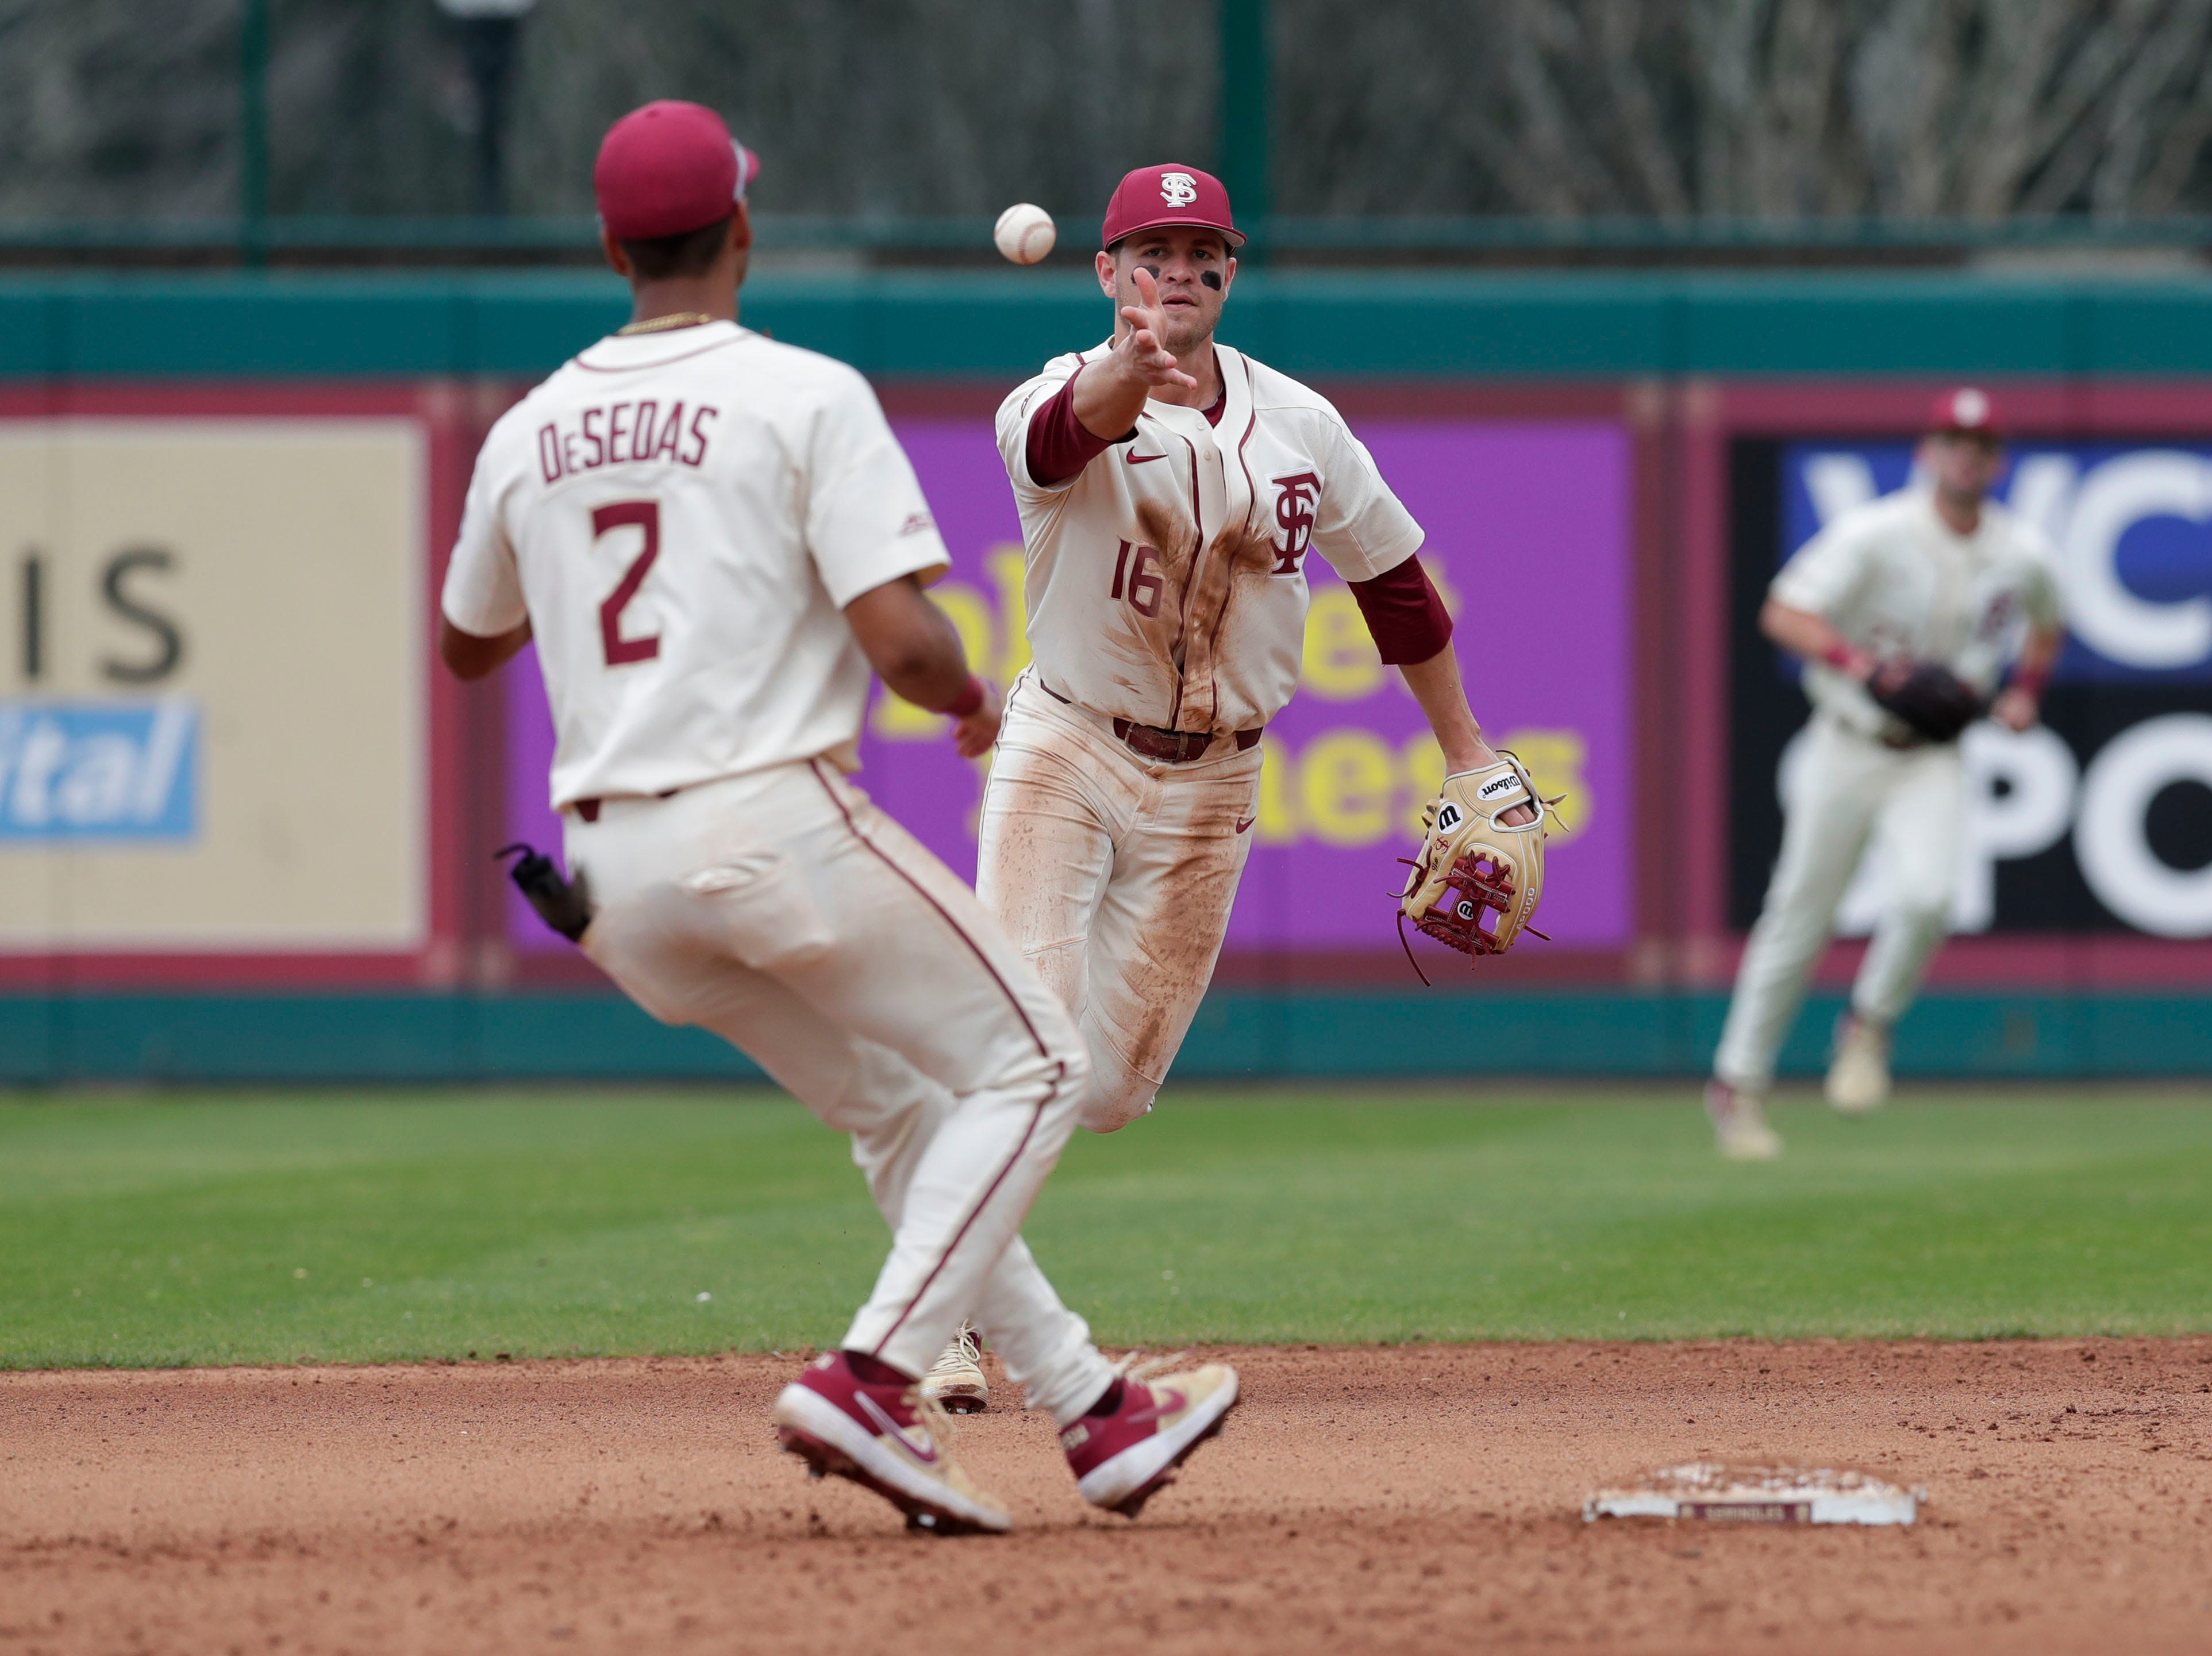 Florida State Seminoles infielder Mike Salvatore (16) tosses the ball to Florida State Seminole infielder Nander De Sedas to get the out at second. The Florida State Seminoles host the Maine Black Bears for the second game of the series, Saturday Feb. 16, 2019.